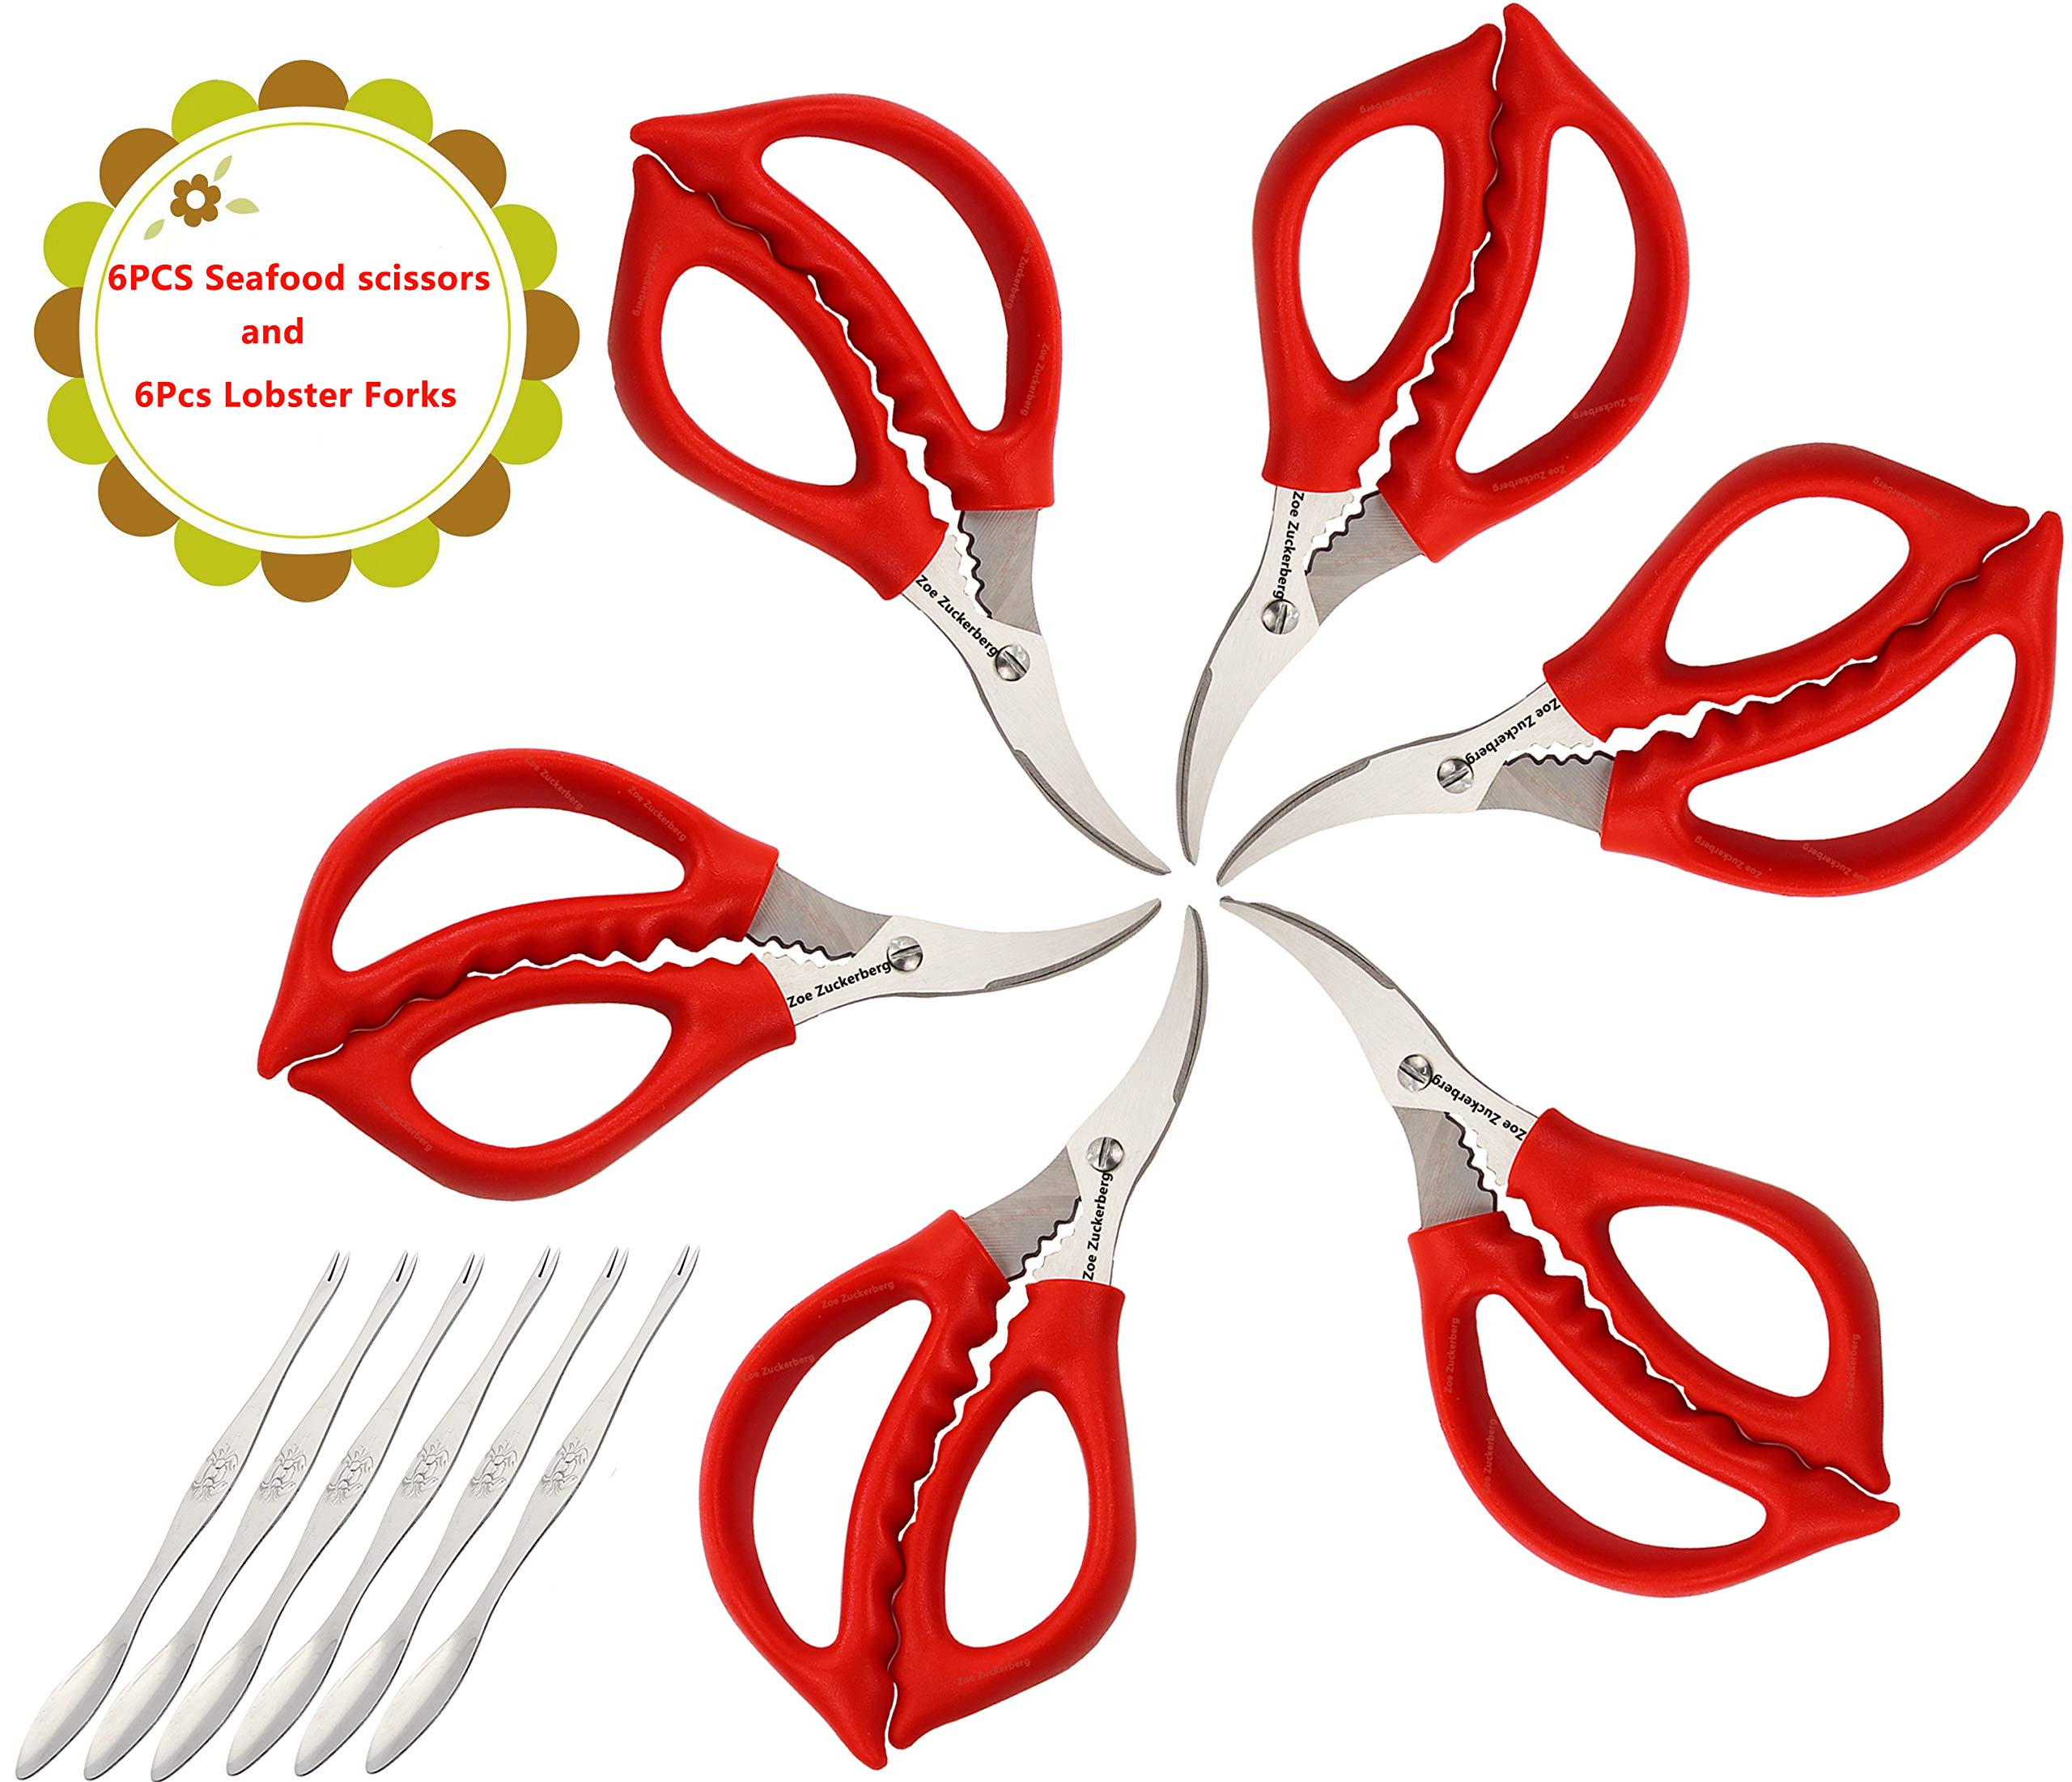 Seafood Scissors and Lobster Forks For Fish Crab Lobster Crab Lobster Scissors Set of 12 Pcs by Zoe Zuckerberg